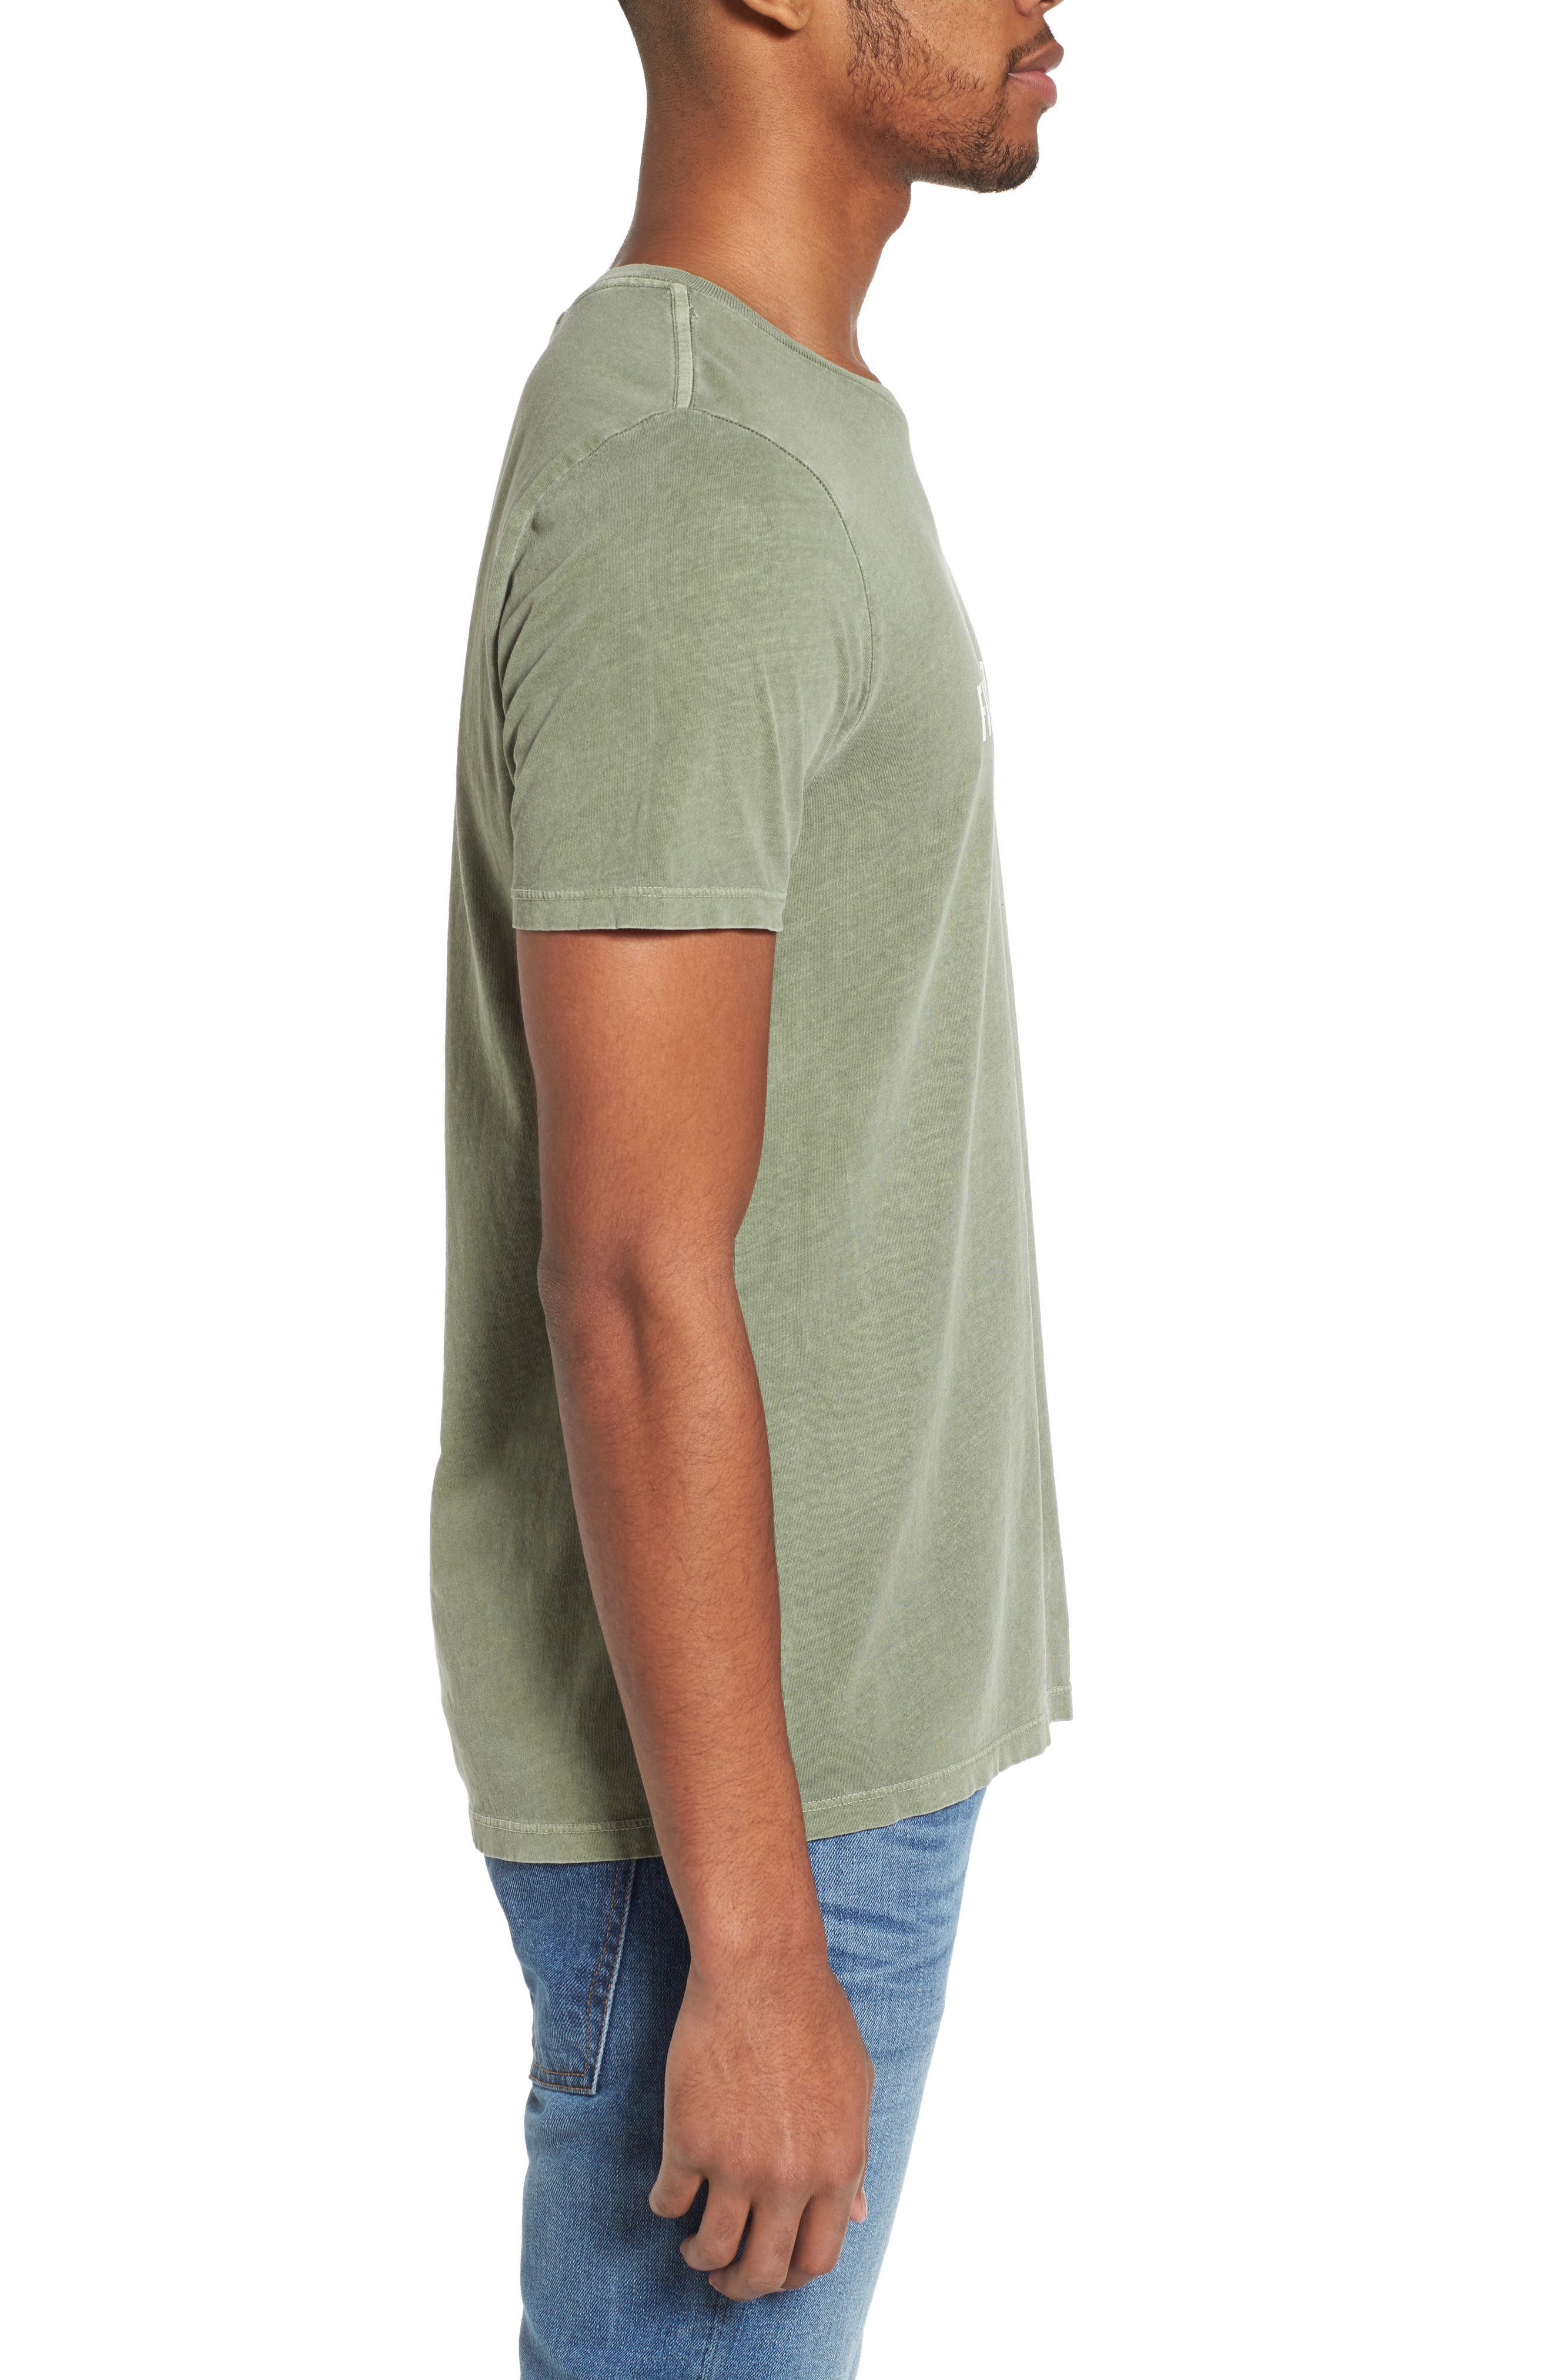 Fillmore Street Vintage Graphic T-Shirt,                             Alternate thumbnail 3, color,                             Army Green